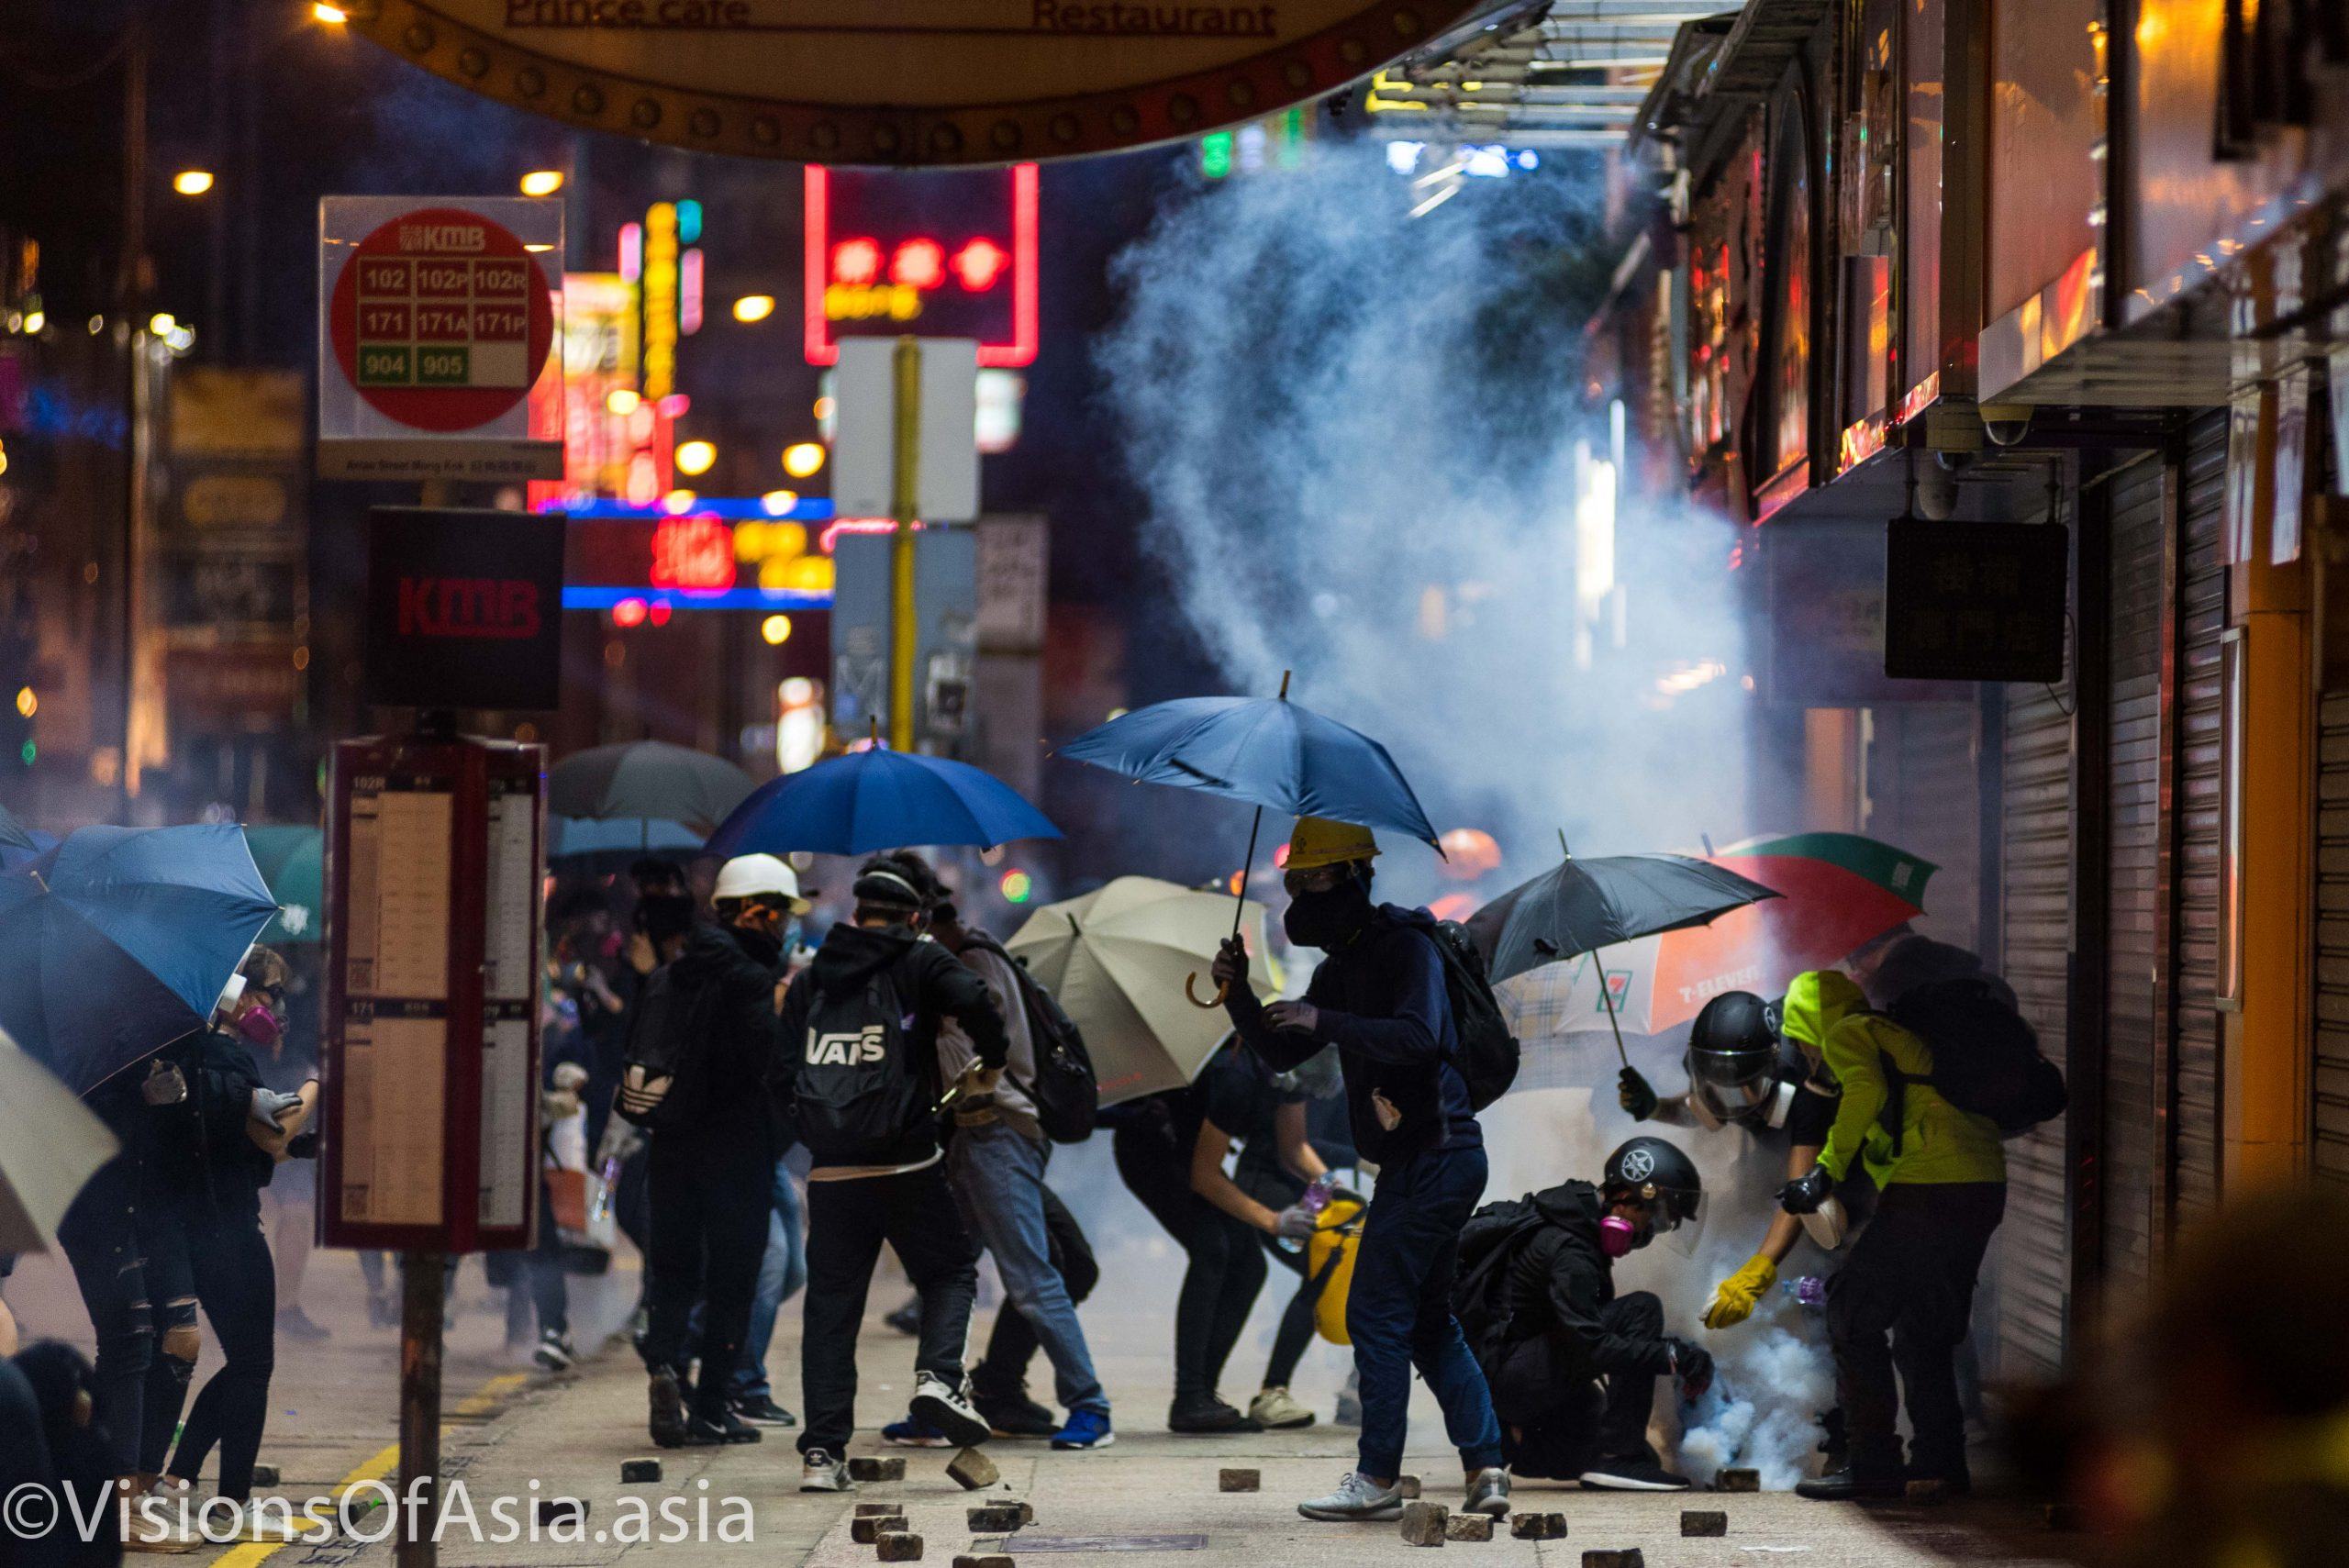 Hong Kong Protests: in the war zone